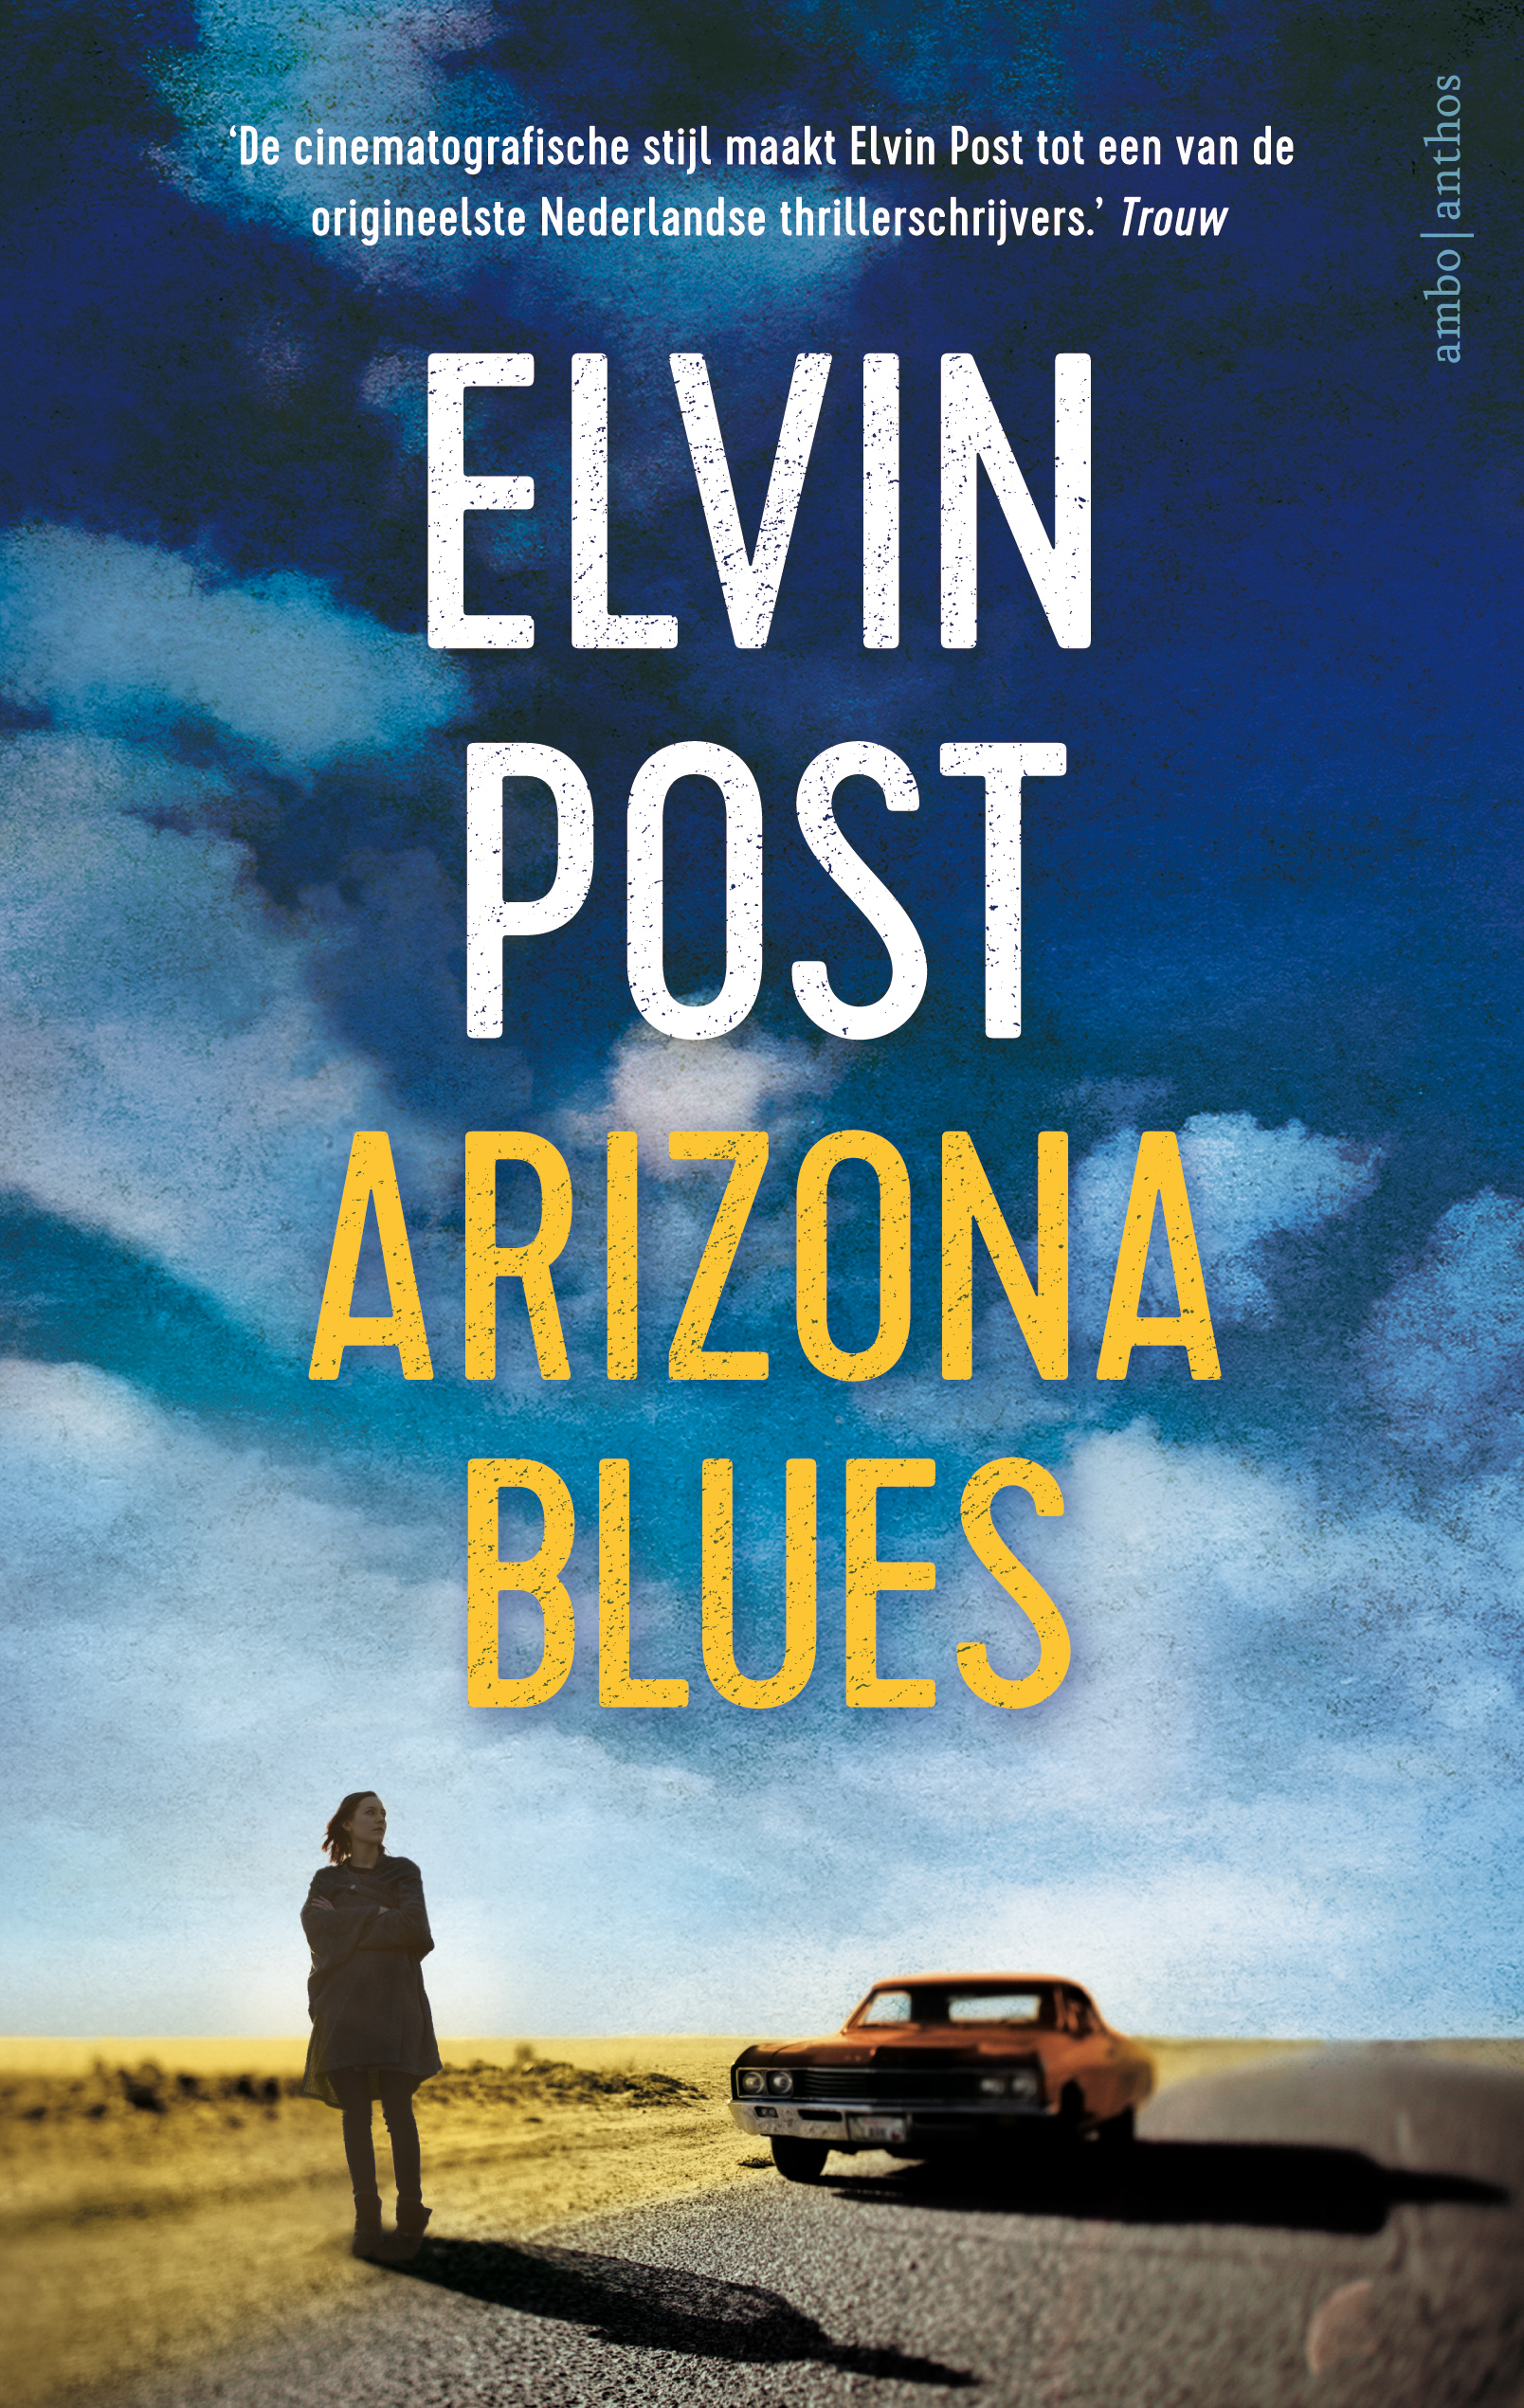 Elvin Post Arizona Blues